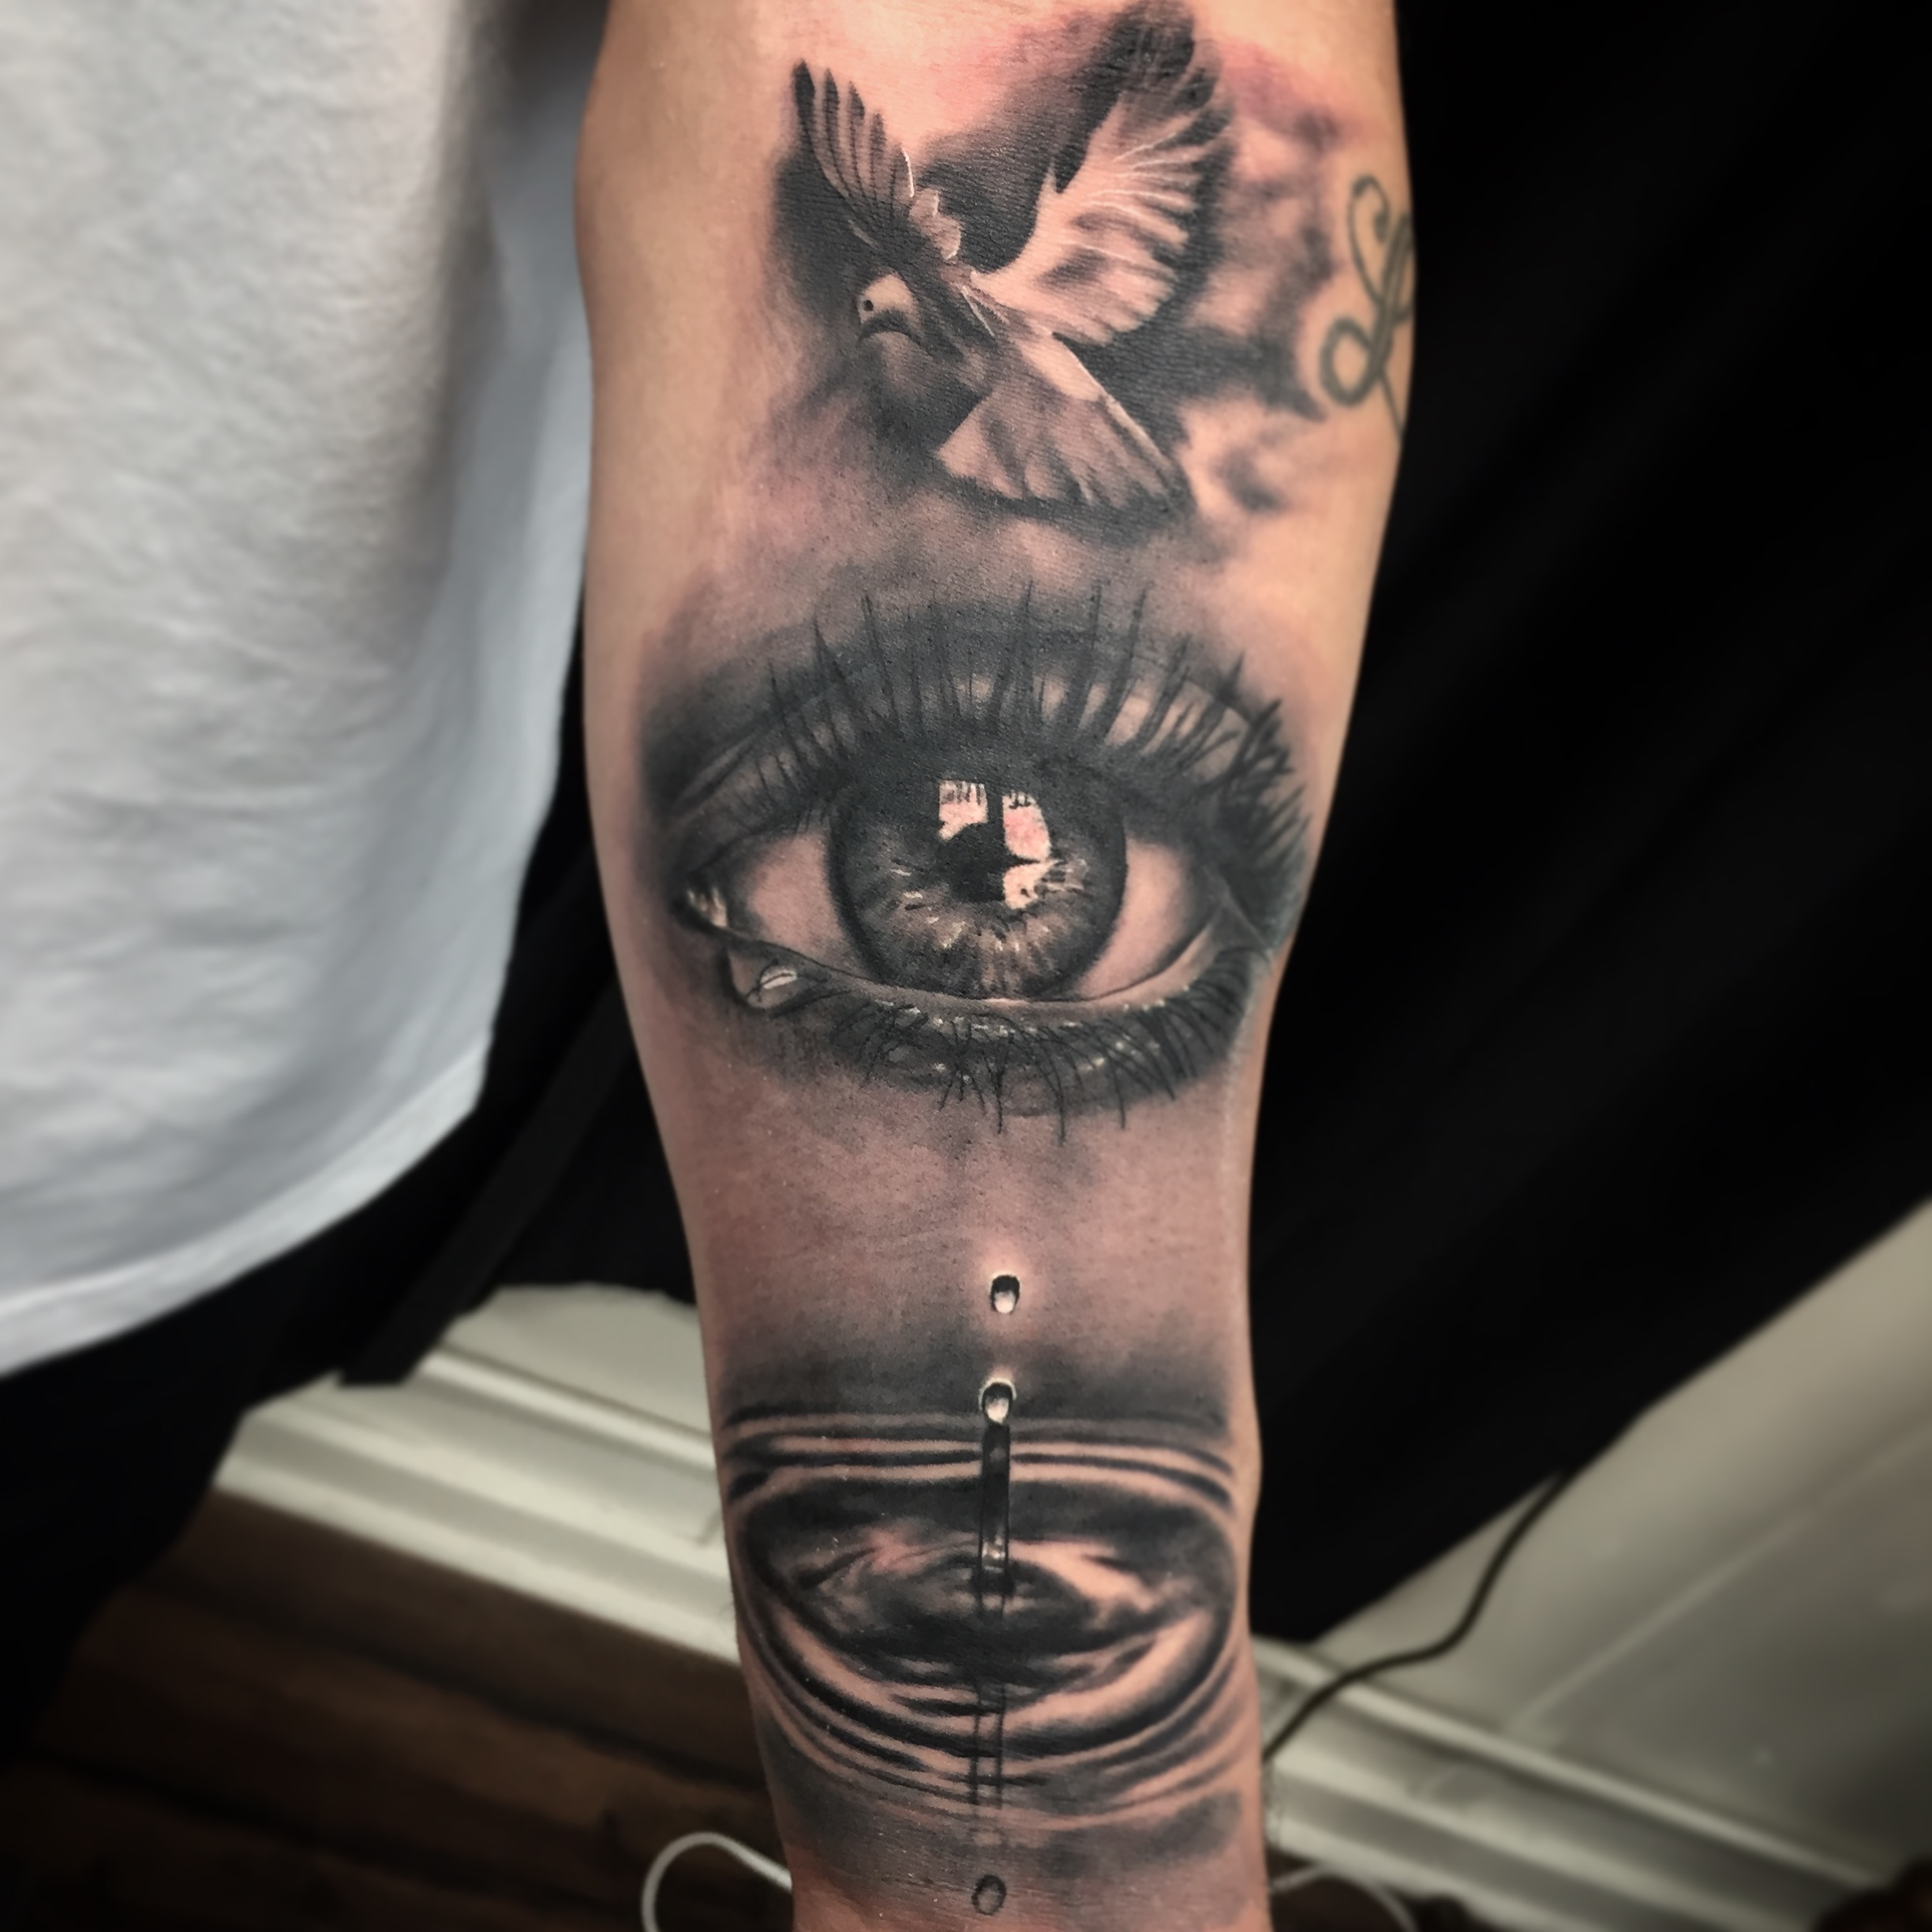 High End Show Piece Tattoos